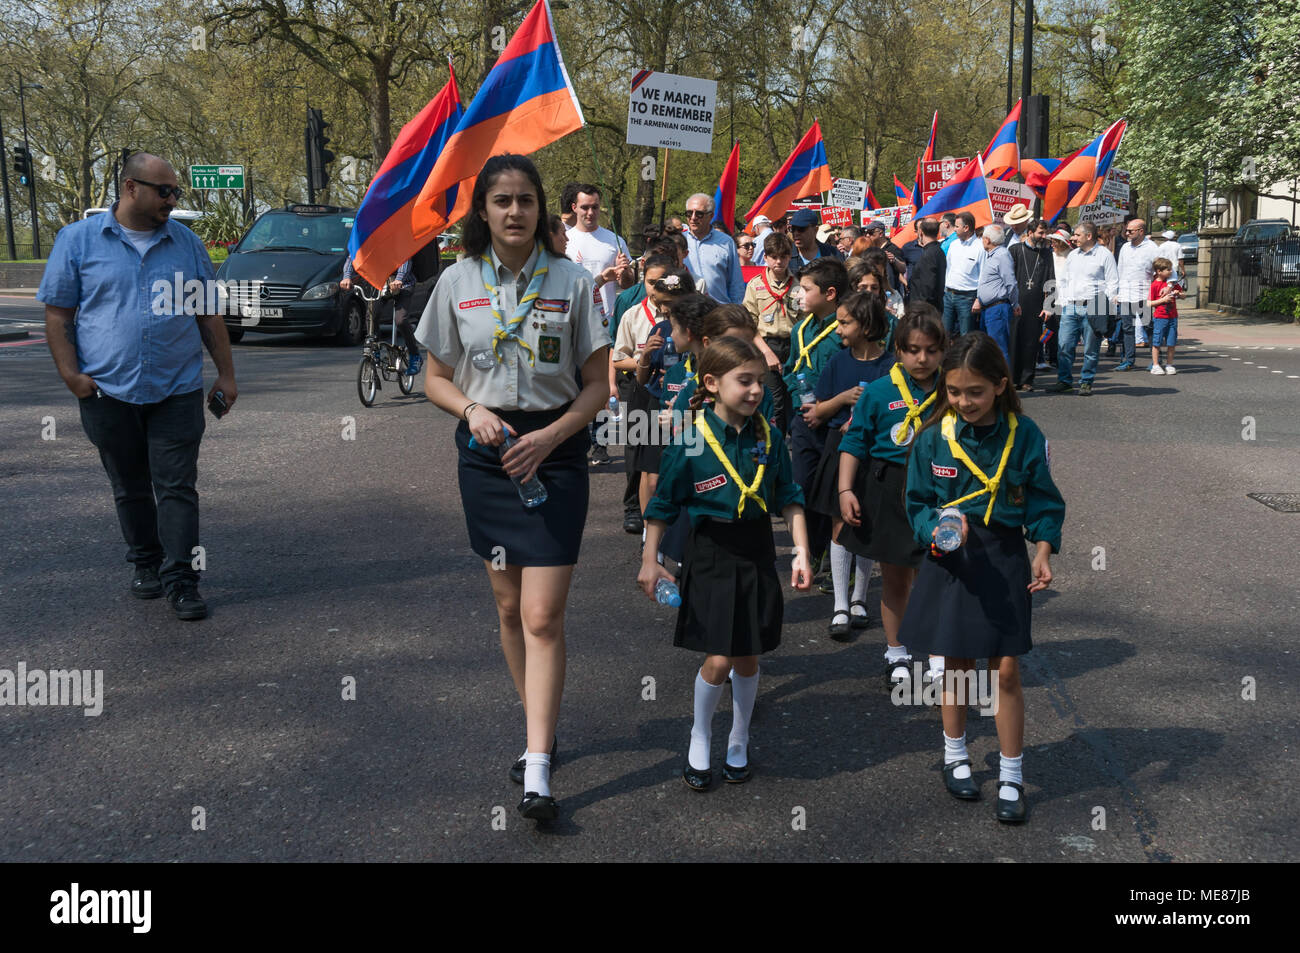 London, UK. 21st April 2018. Young Armenian Scouts march through London from Marble Arch to the Cenotaph at the start of a series of events commemorating the 103rd anniversary of the beginning of the Armenian Genocide. They demand the UK follow the lead of many other countries and recognise the Armenian genocide. Between 1915 and 1923 Turkey killed 1.5m Armenians, around 70% of the Armenian population, but Turkey still refuses to accept these mass killings as genocide. Credit: Peter Marshall/Alamy Live News - Stock Image